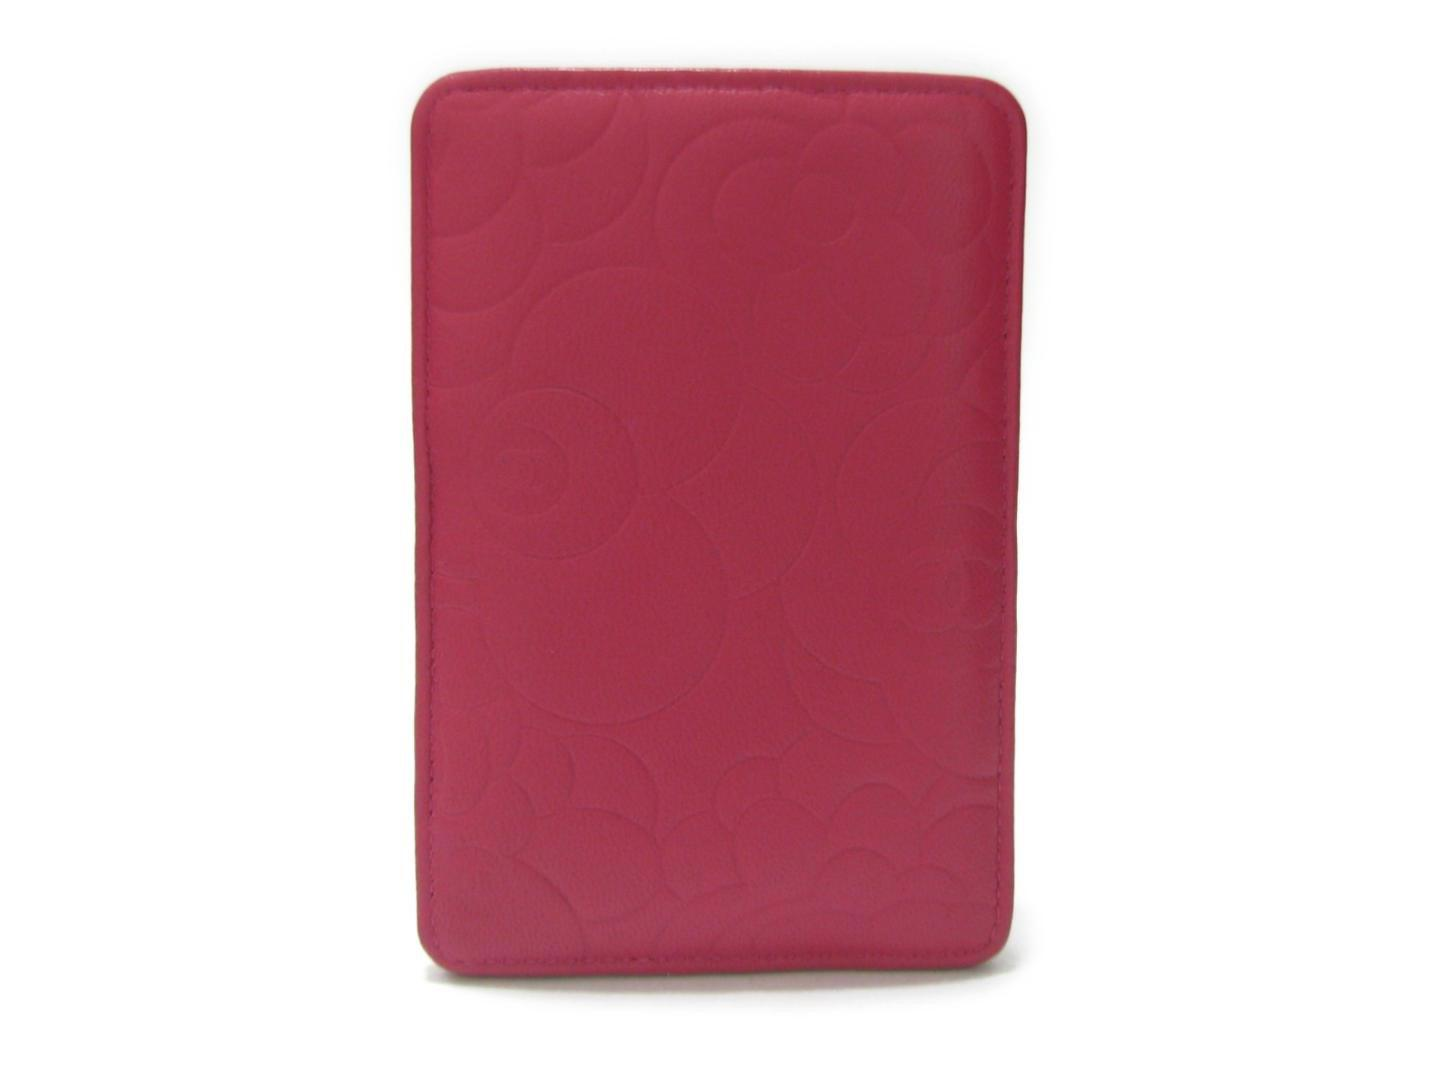 finest selection 2a9a6 1f5fe Lyst - Chanel Camellia Iphone Case Calfskin Leather Pink in Pink